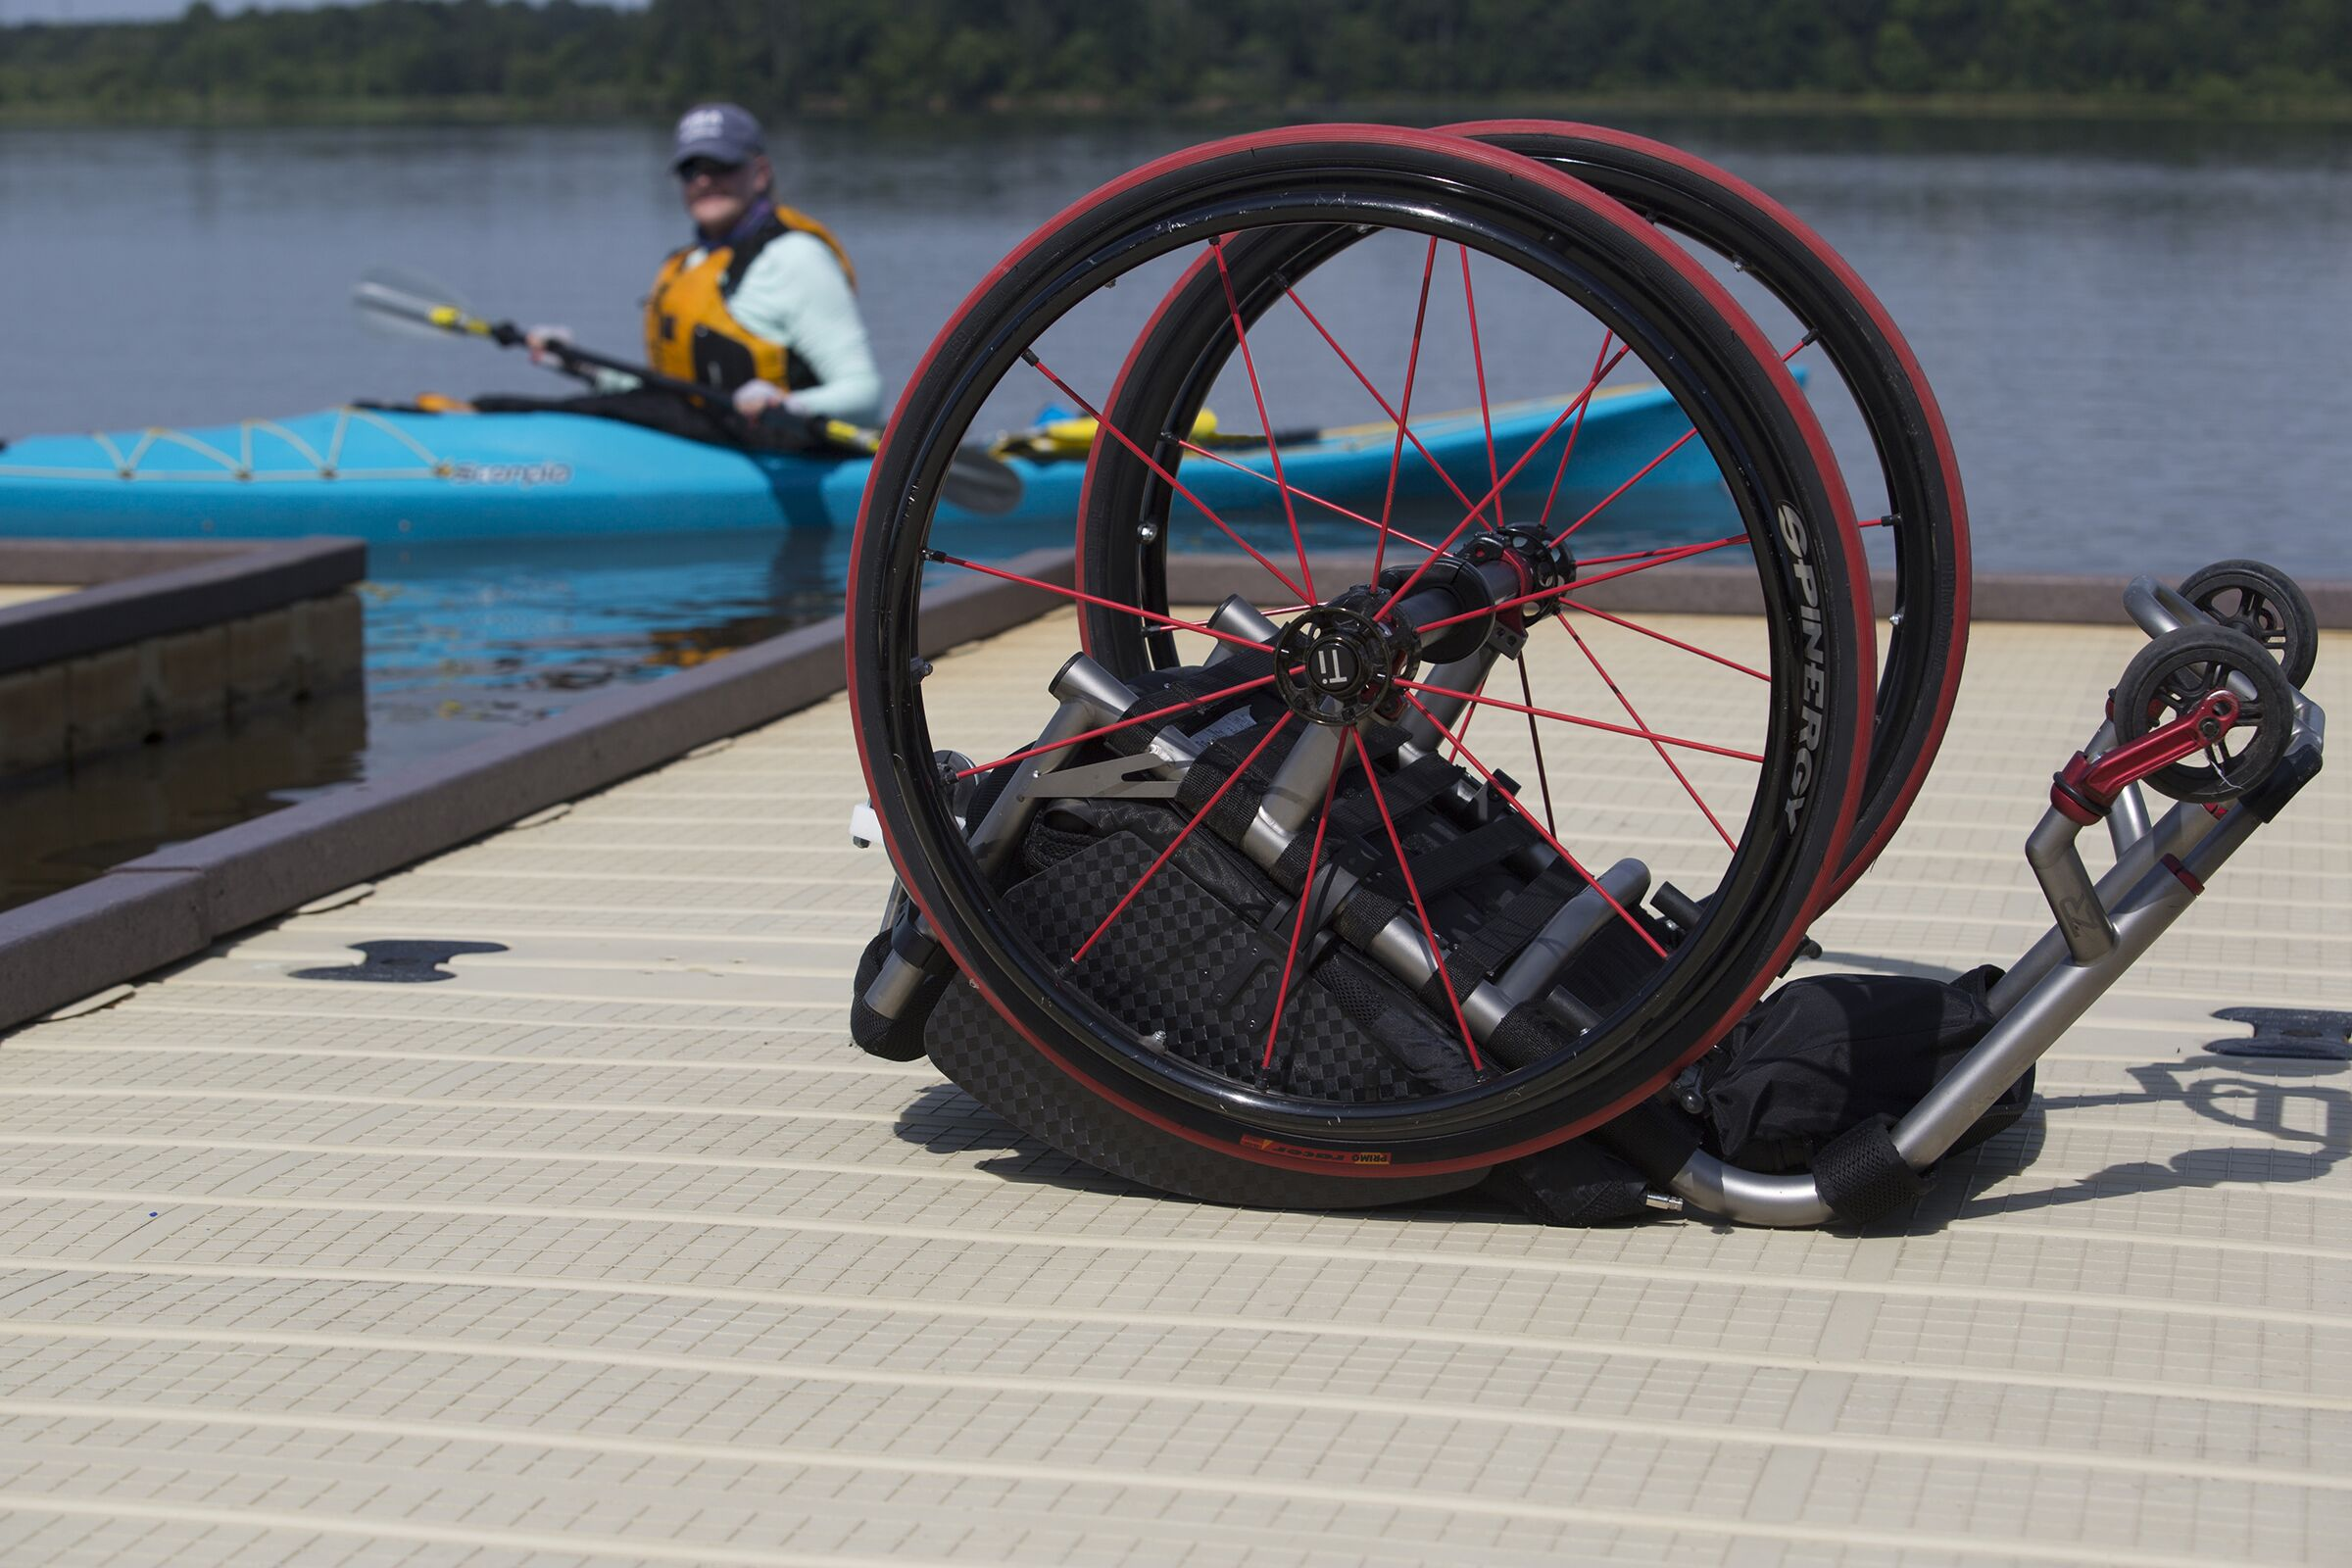 picture of Ashley in Kayak in background with an empty wheelchair in the foreground